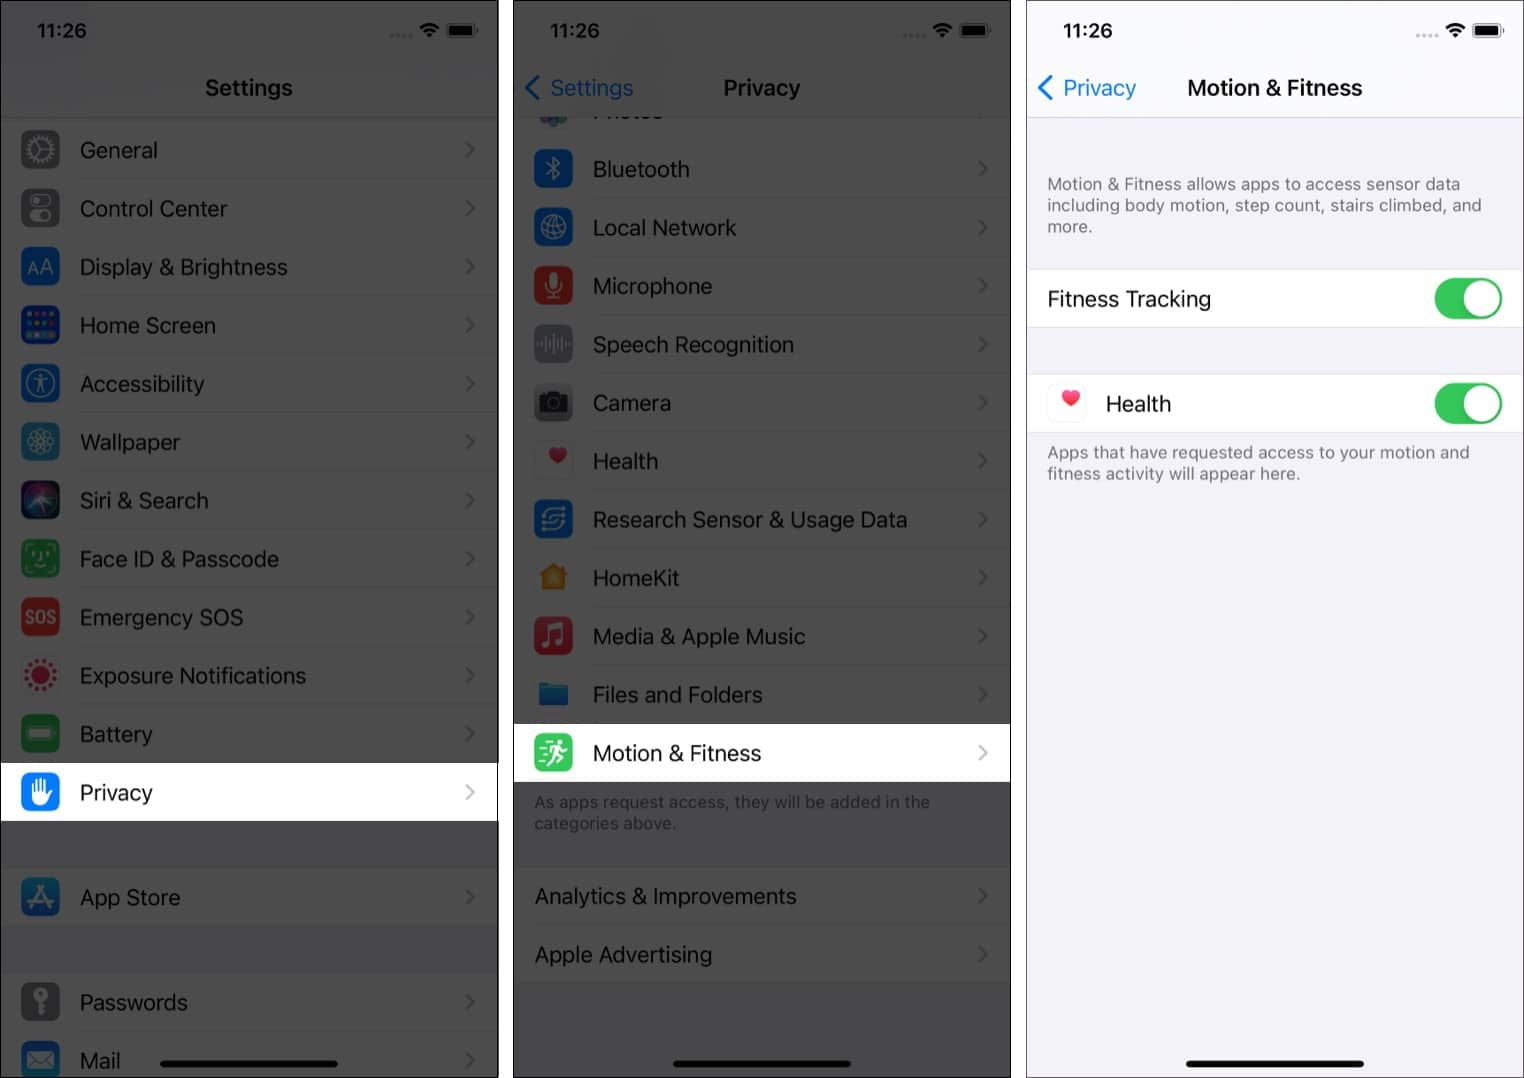 In iPhone Settings tap Privacy Motion & Fitness and enable Fitness Tracking and Health